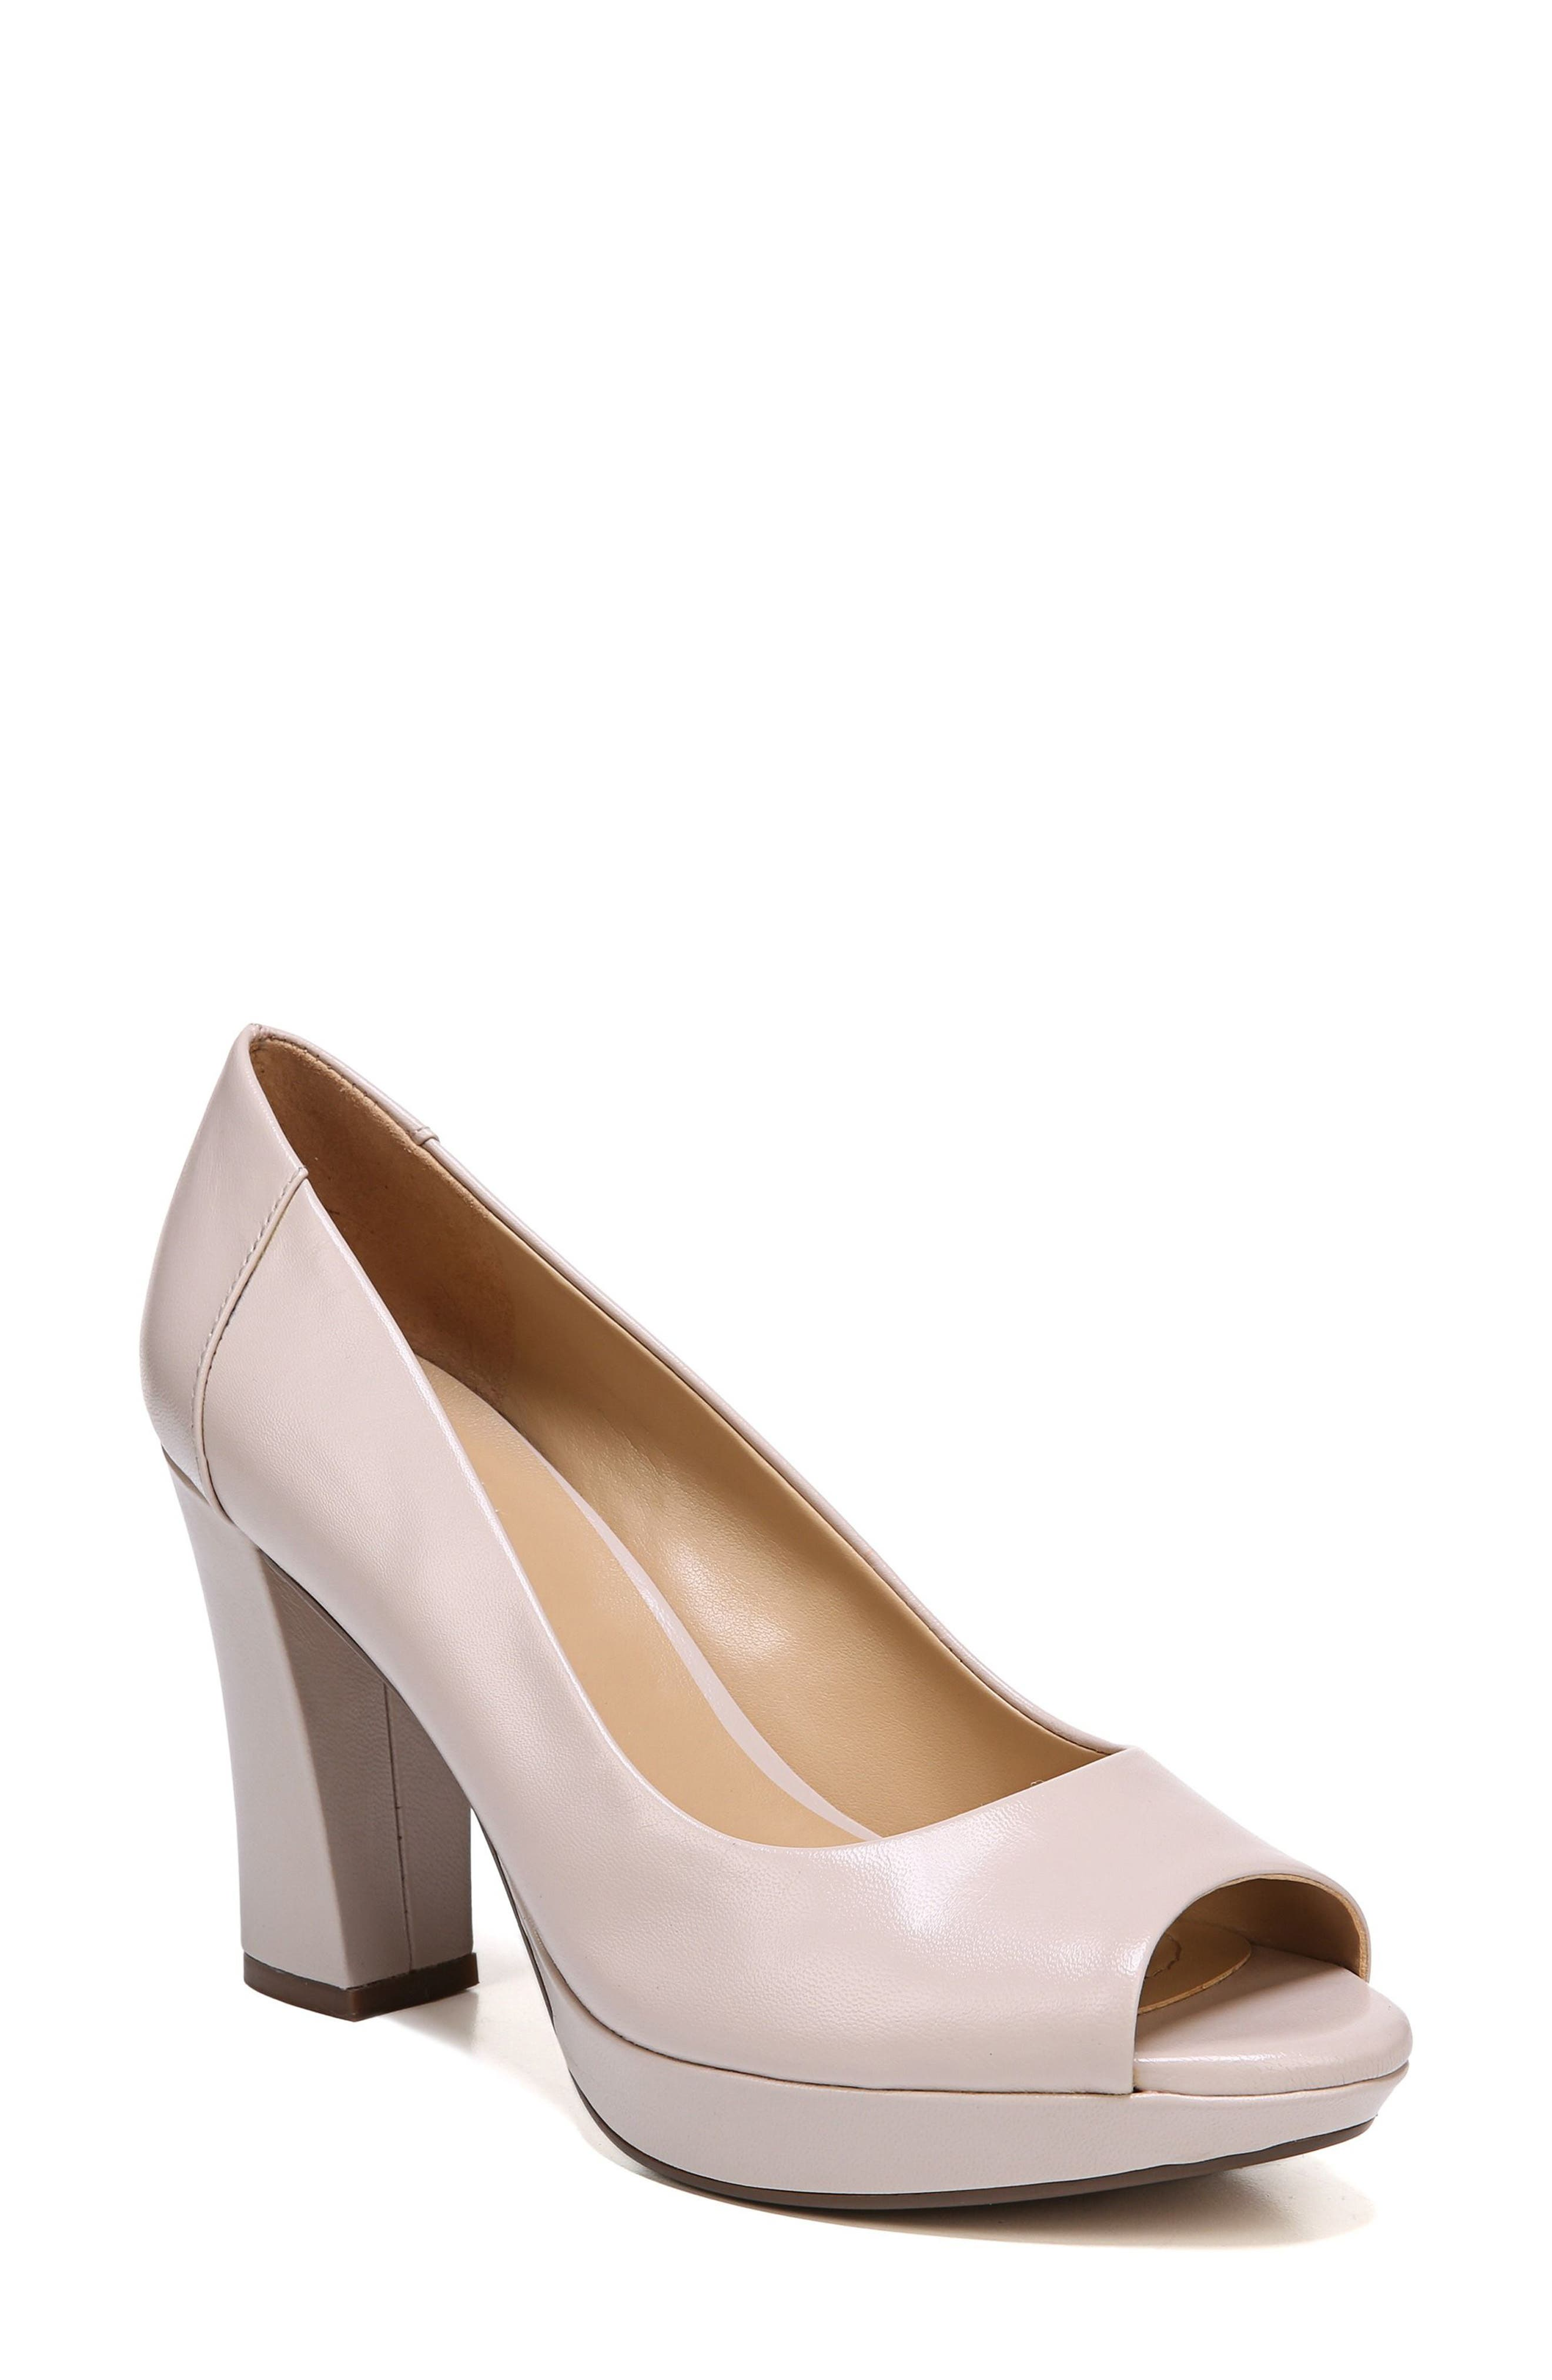 Amie Pump,                         Main,                         color, Soft Marble Leather